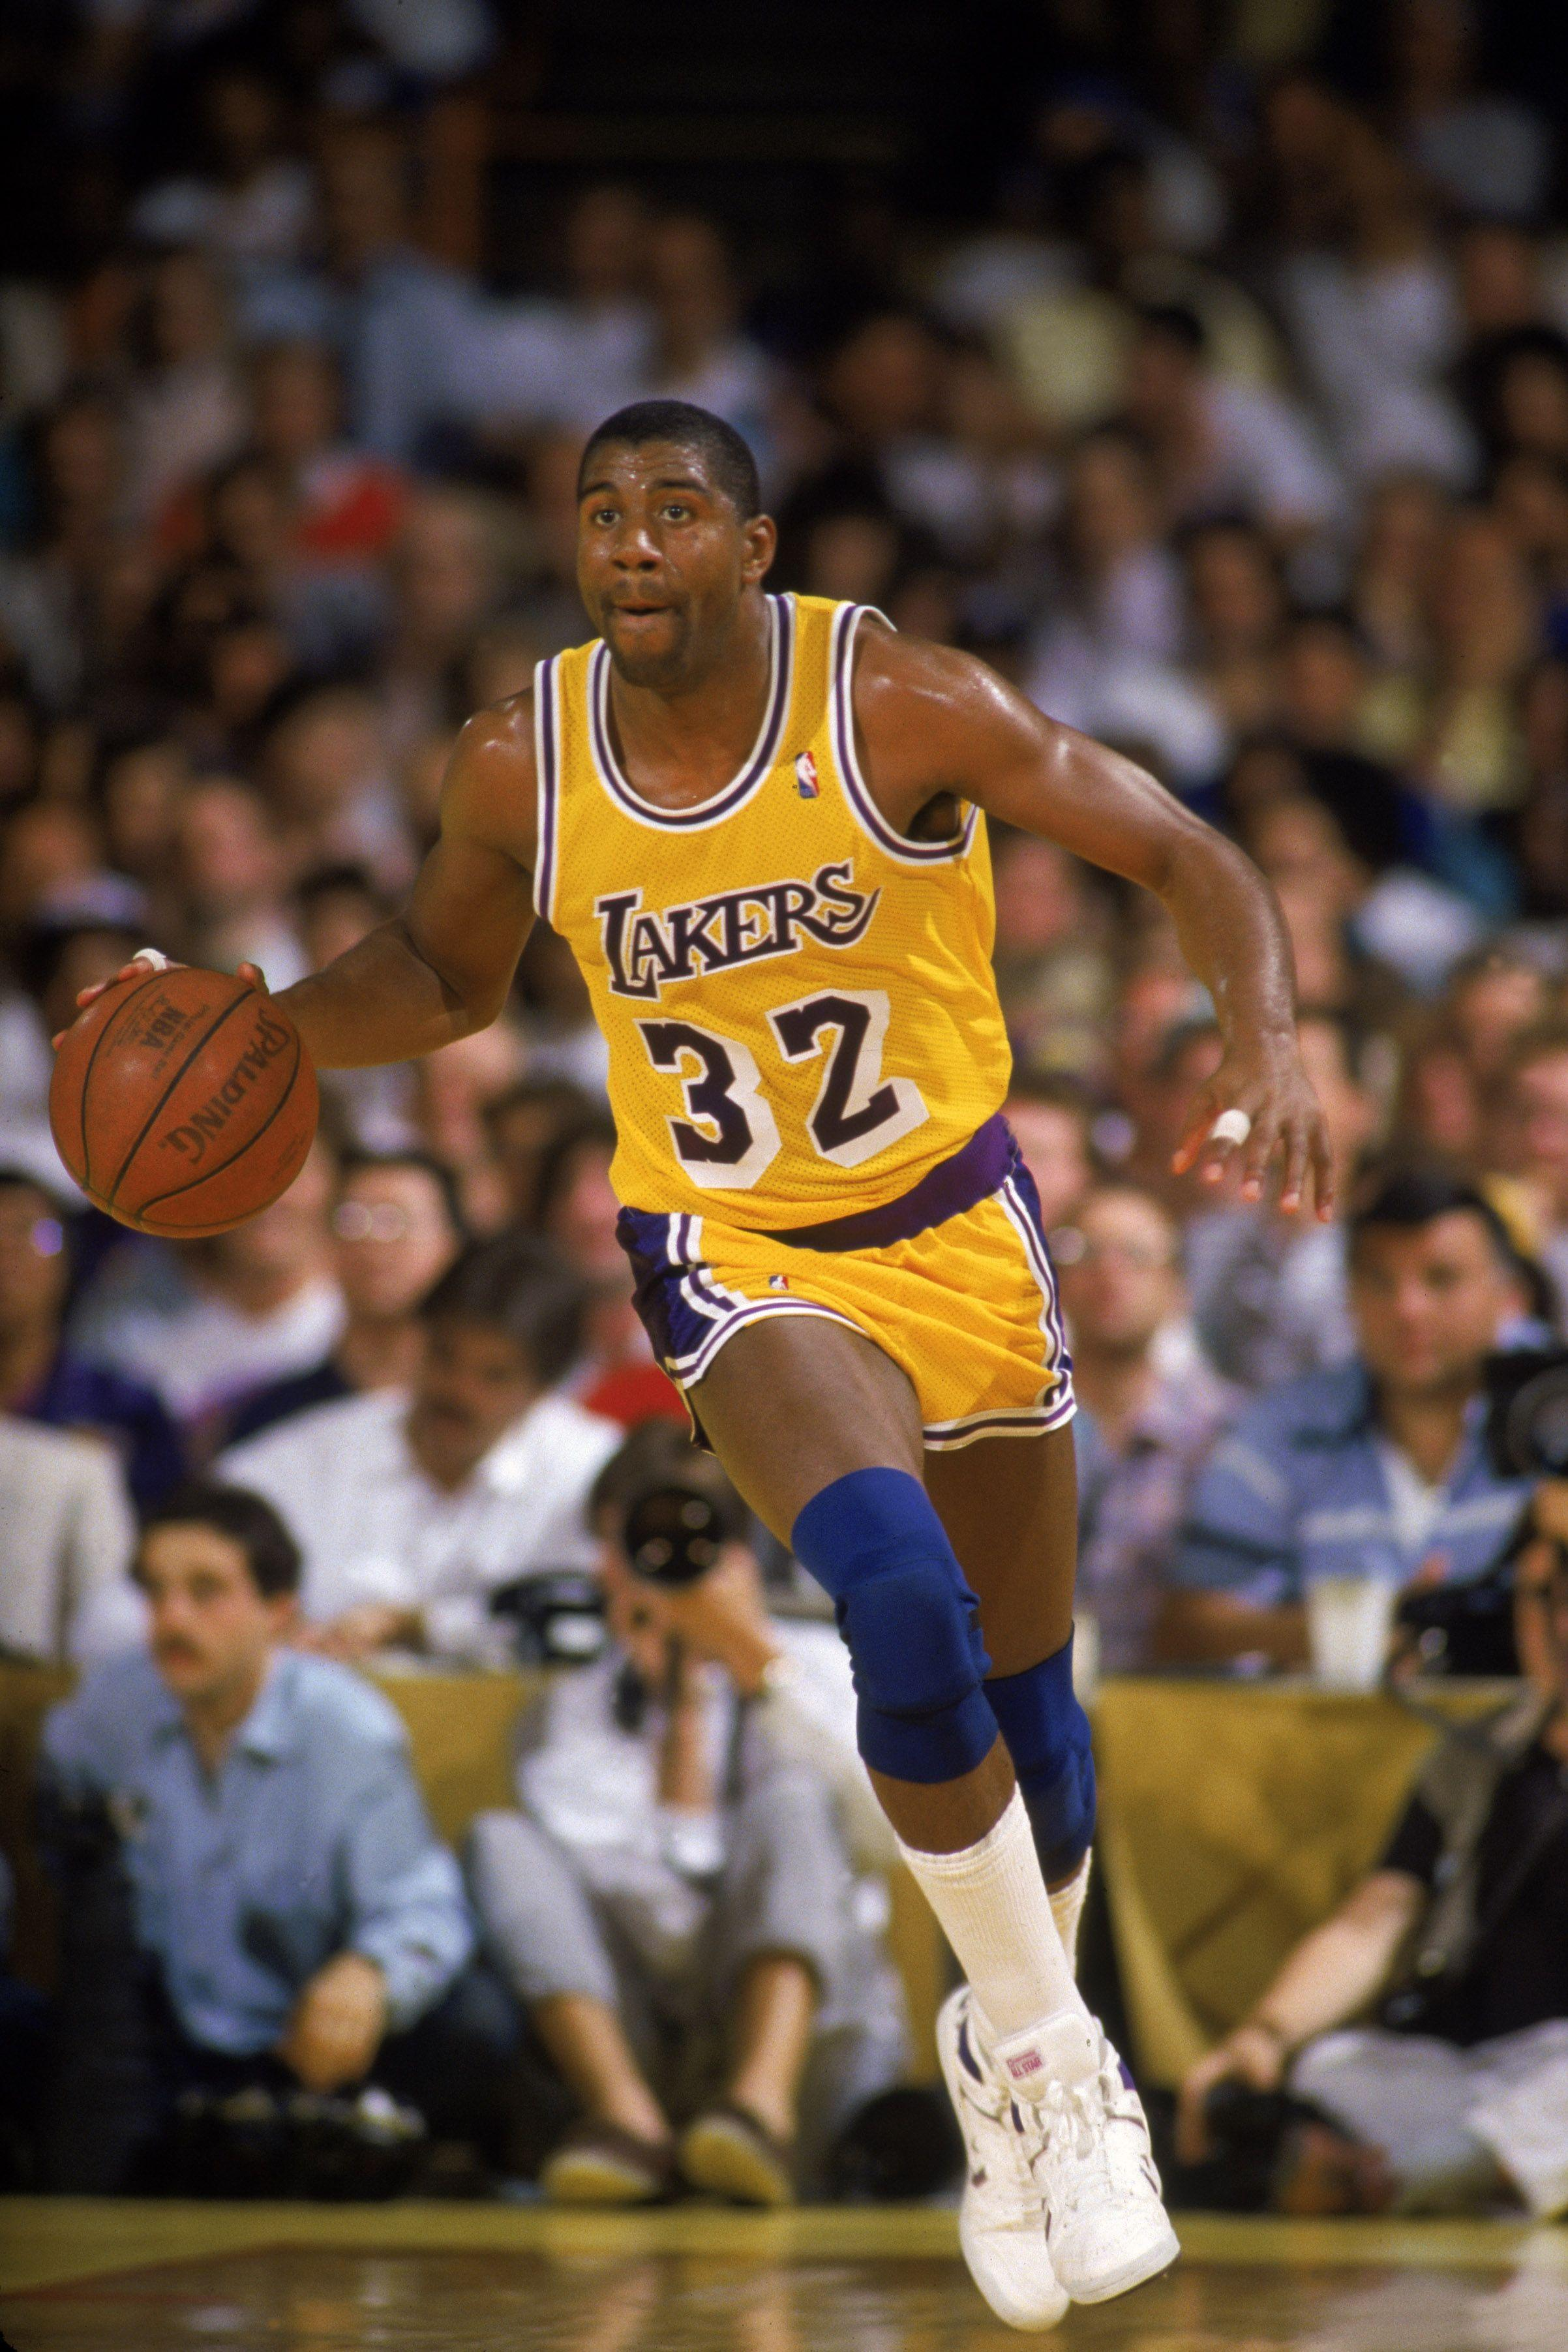 High Quality Magic Johnson Wallpapers